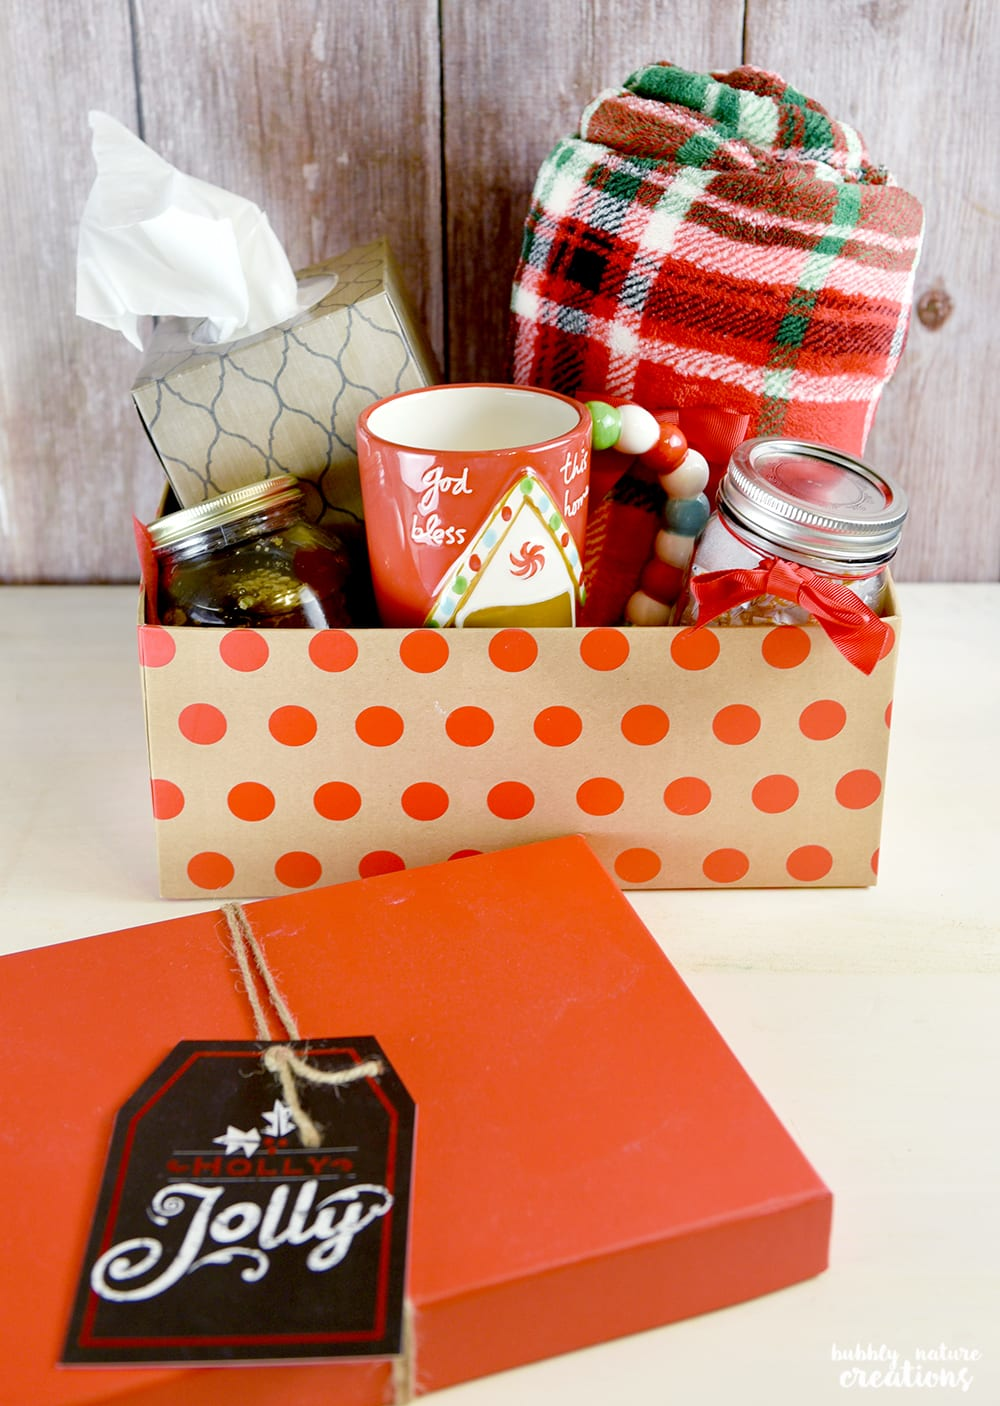 Winter Care Kit Gift!! Know someone battling the cold or flu this season? Make them this easy kit!